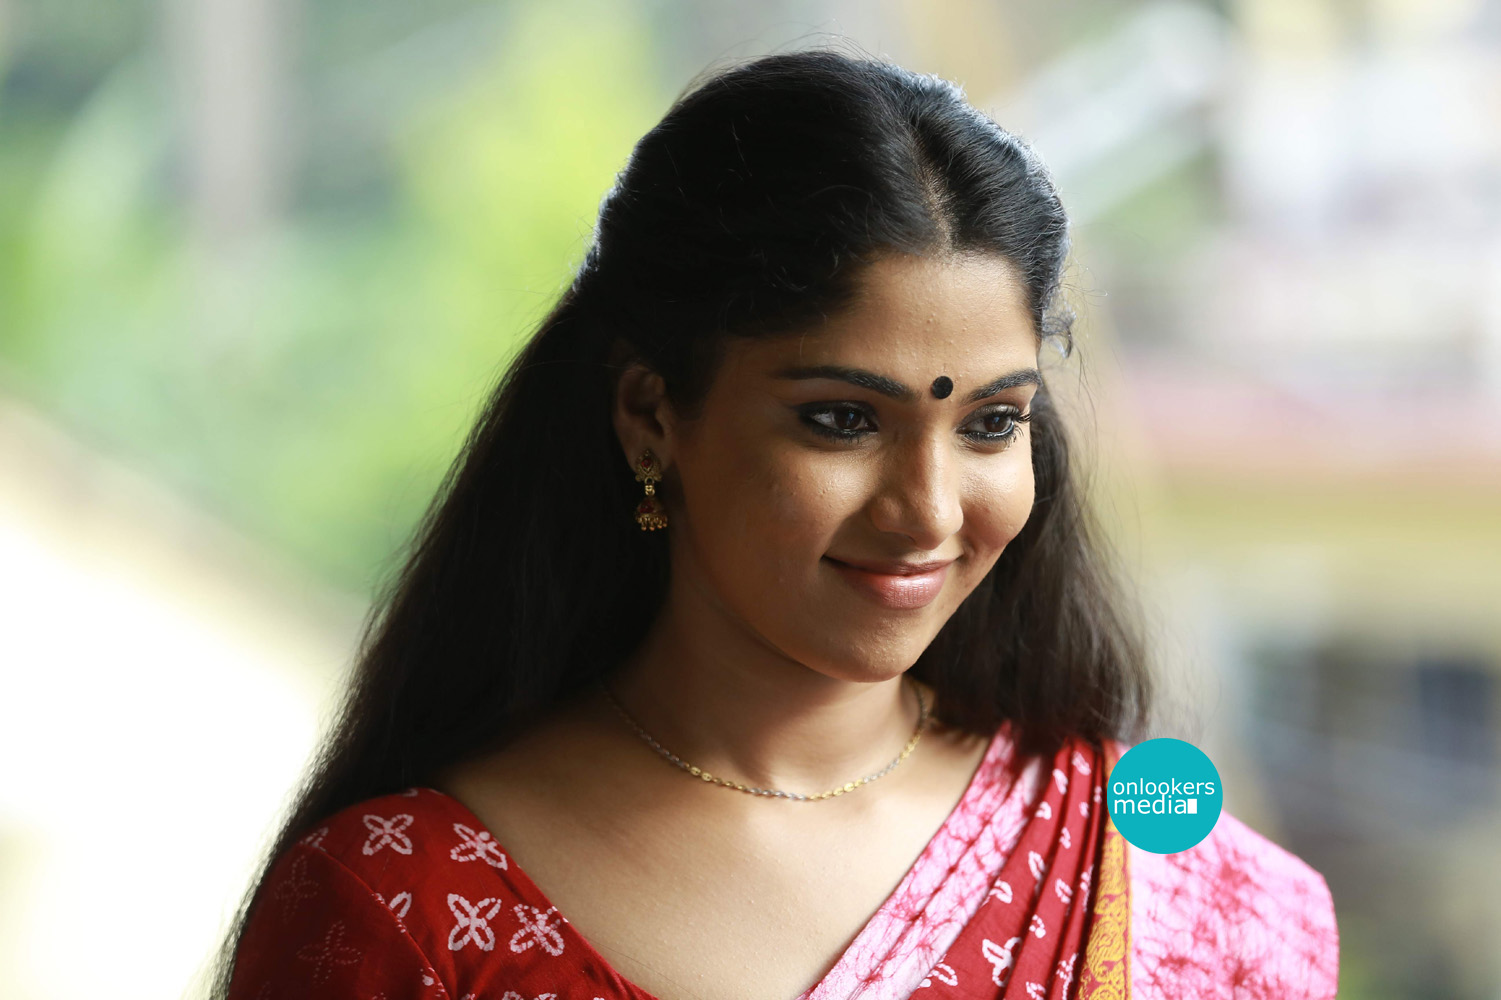 You too brutus malayalam movie stills images gallery photos you too brutus malayalam movie stills images gallery photos onlookers media thecheapjerseys Gallery